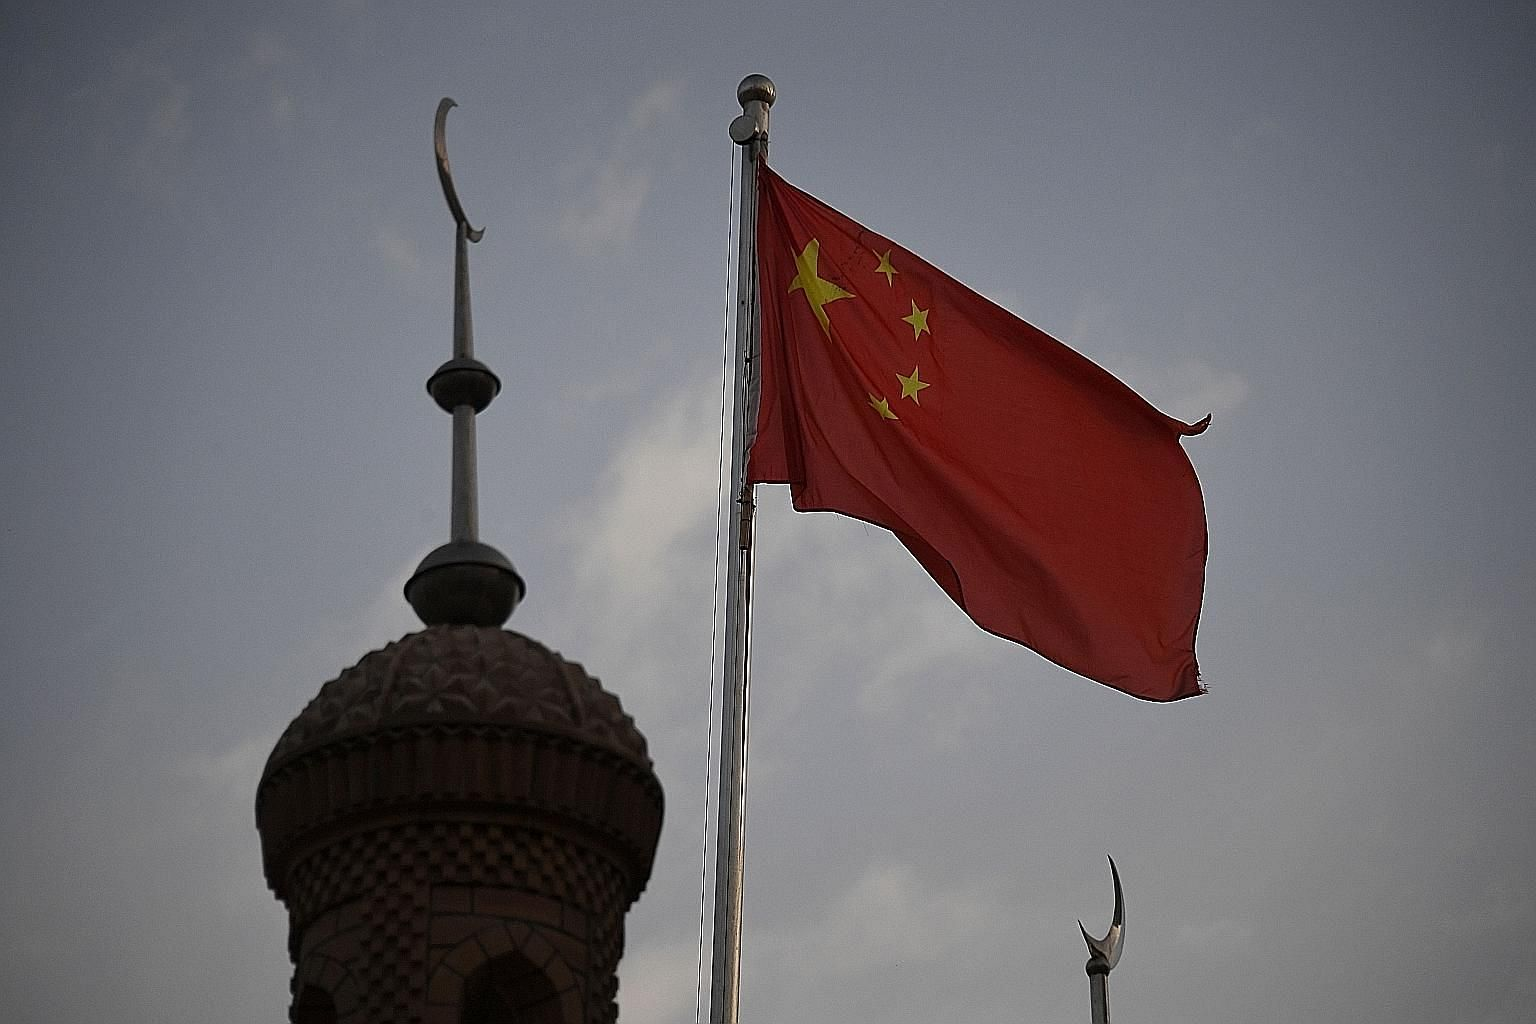 A Chinese flag beside a mosque in Xinjiang. While the US legislation is aimed at what it sees as human rights abuses in Xinjiang, China says its actions there are to fight poverty and religious radicalisation.